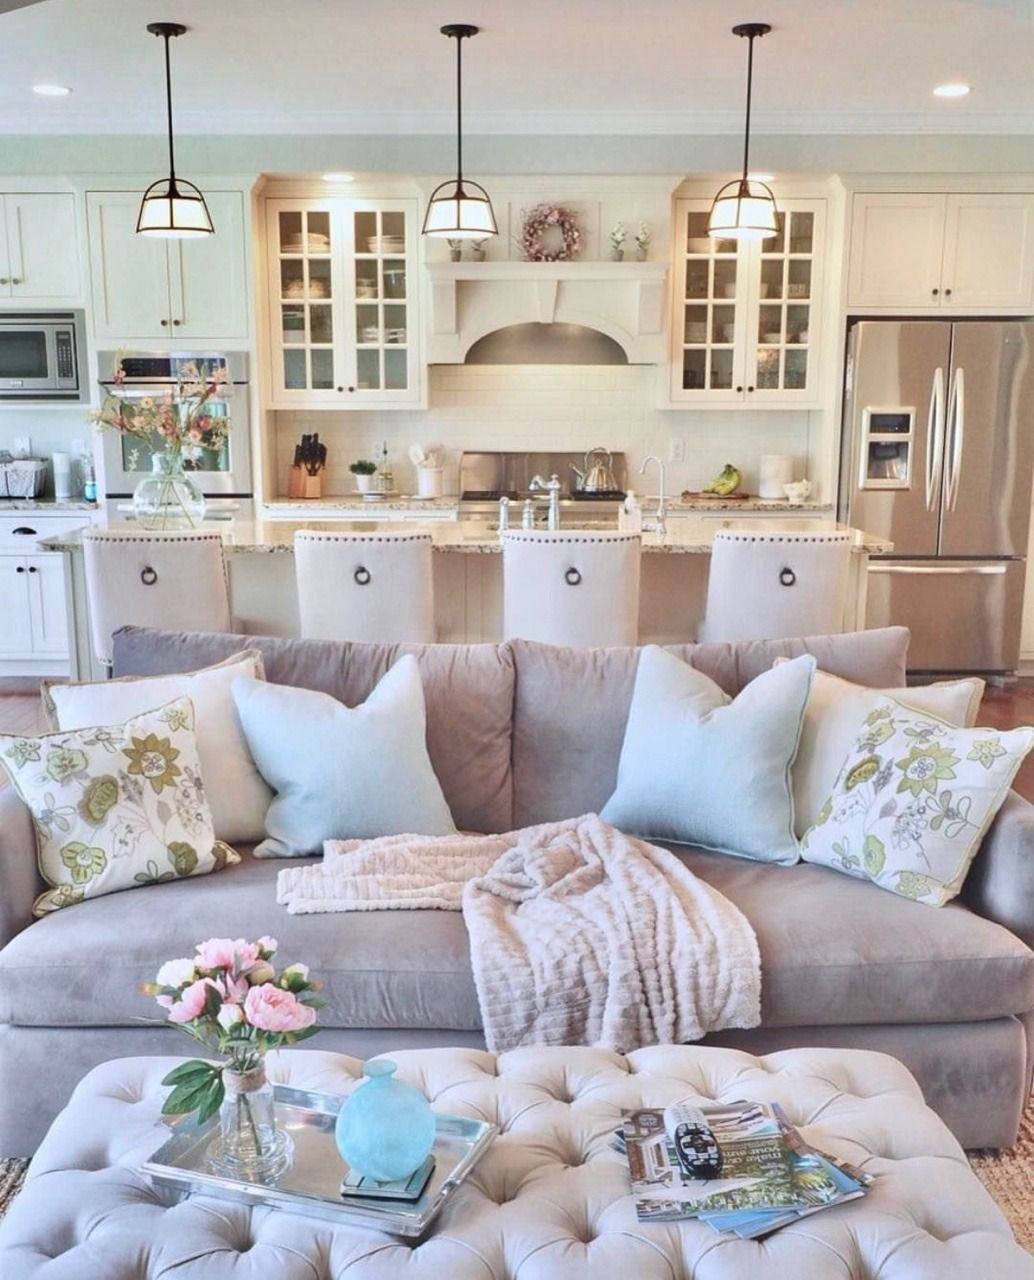 Southern State Rustic Furniture Accessories: Rustic Chic, Country Classic, Southern Prep